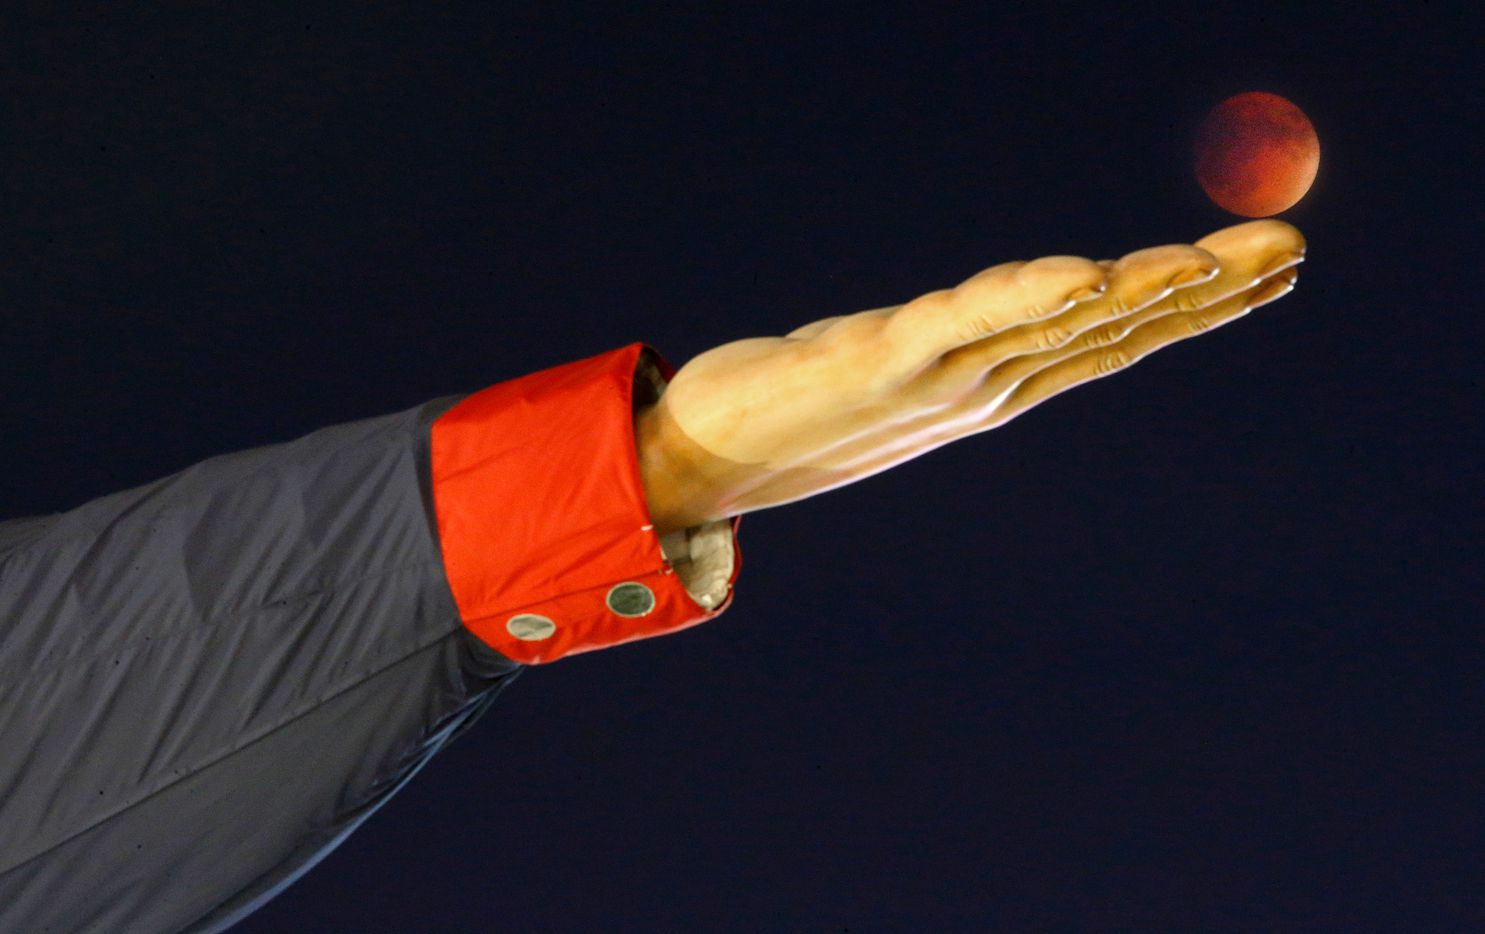 Big Tex appears to be balancing the Super Blood Moon on his fingertips during a lunar eclipse on Sept. 27, 2015 during the State Fair of Texas at Fair Park in Dallas. When the moon enters the umbra or darker inner shadow, the total eclipse begins and the moon appears reddish orange.